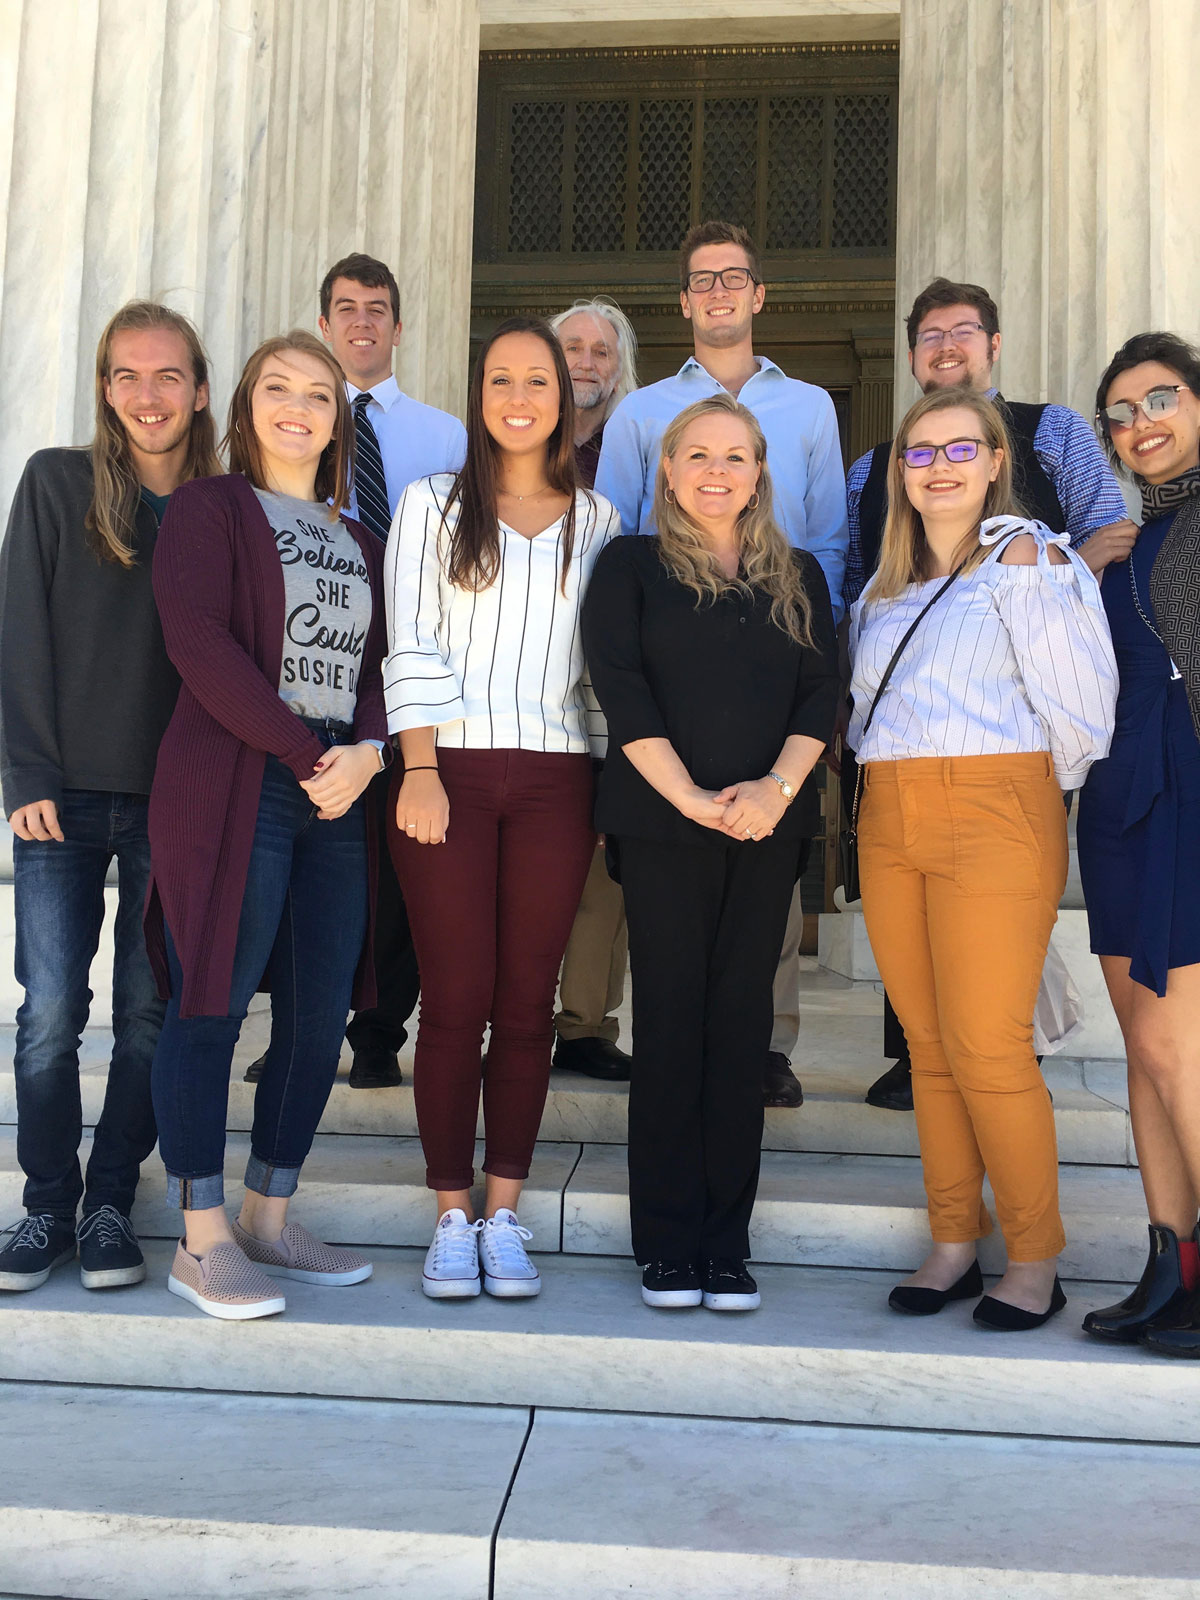 Group photo of students and faculty in the BLC Legal Studies Department, standing on courthouse steps